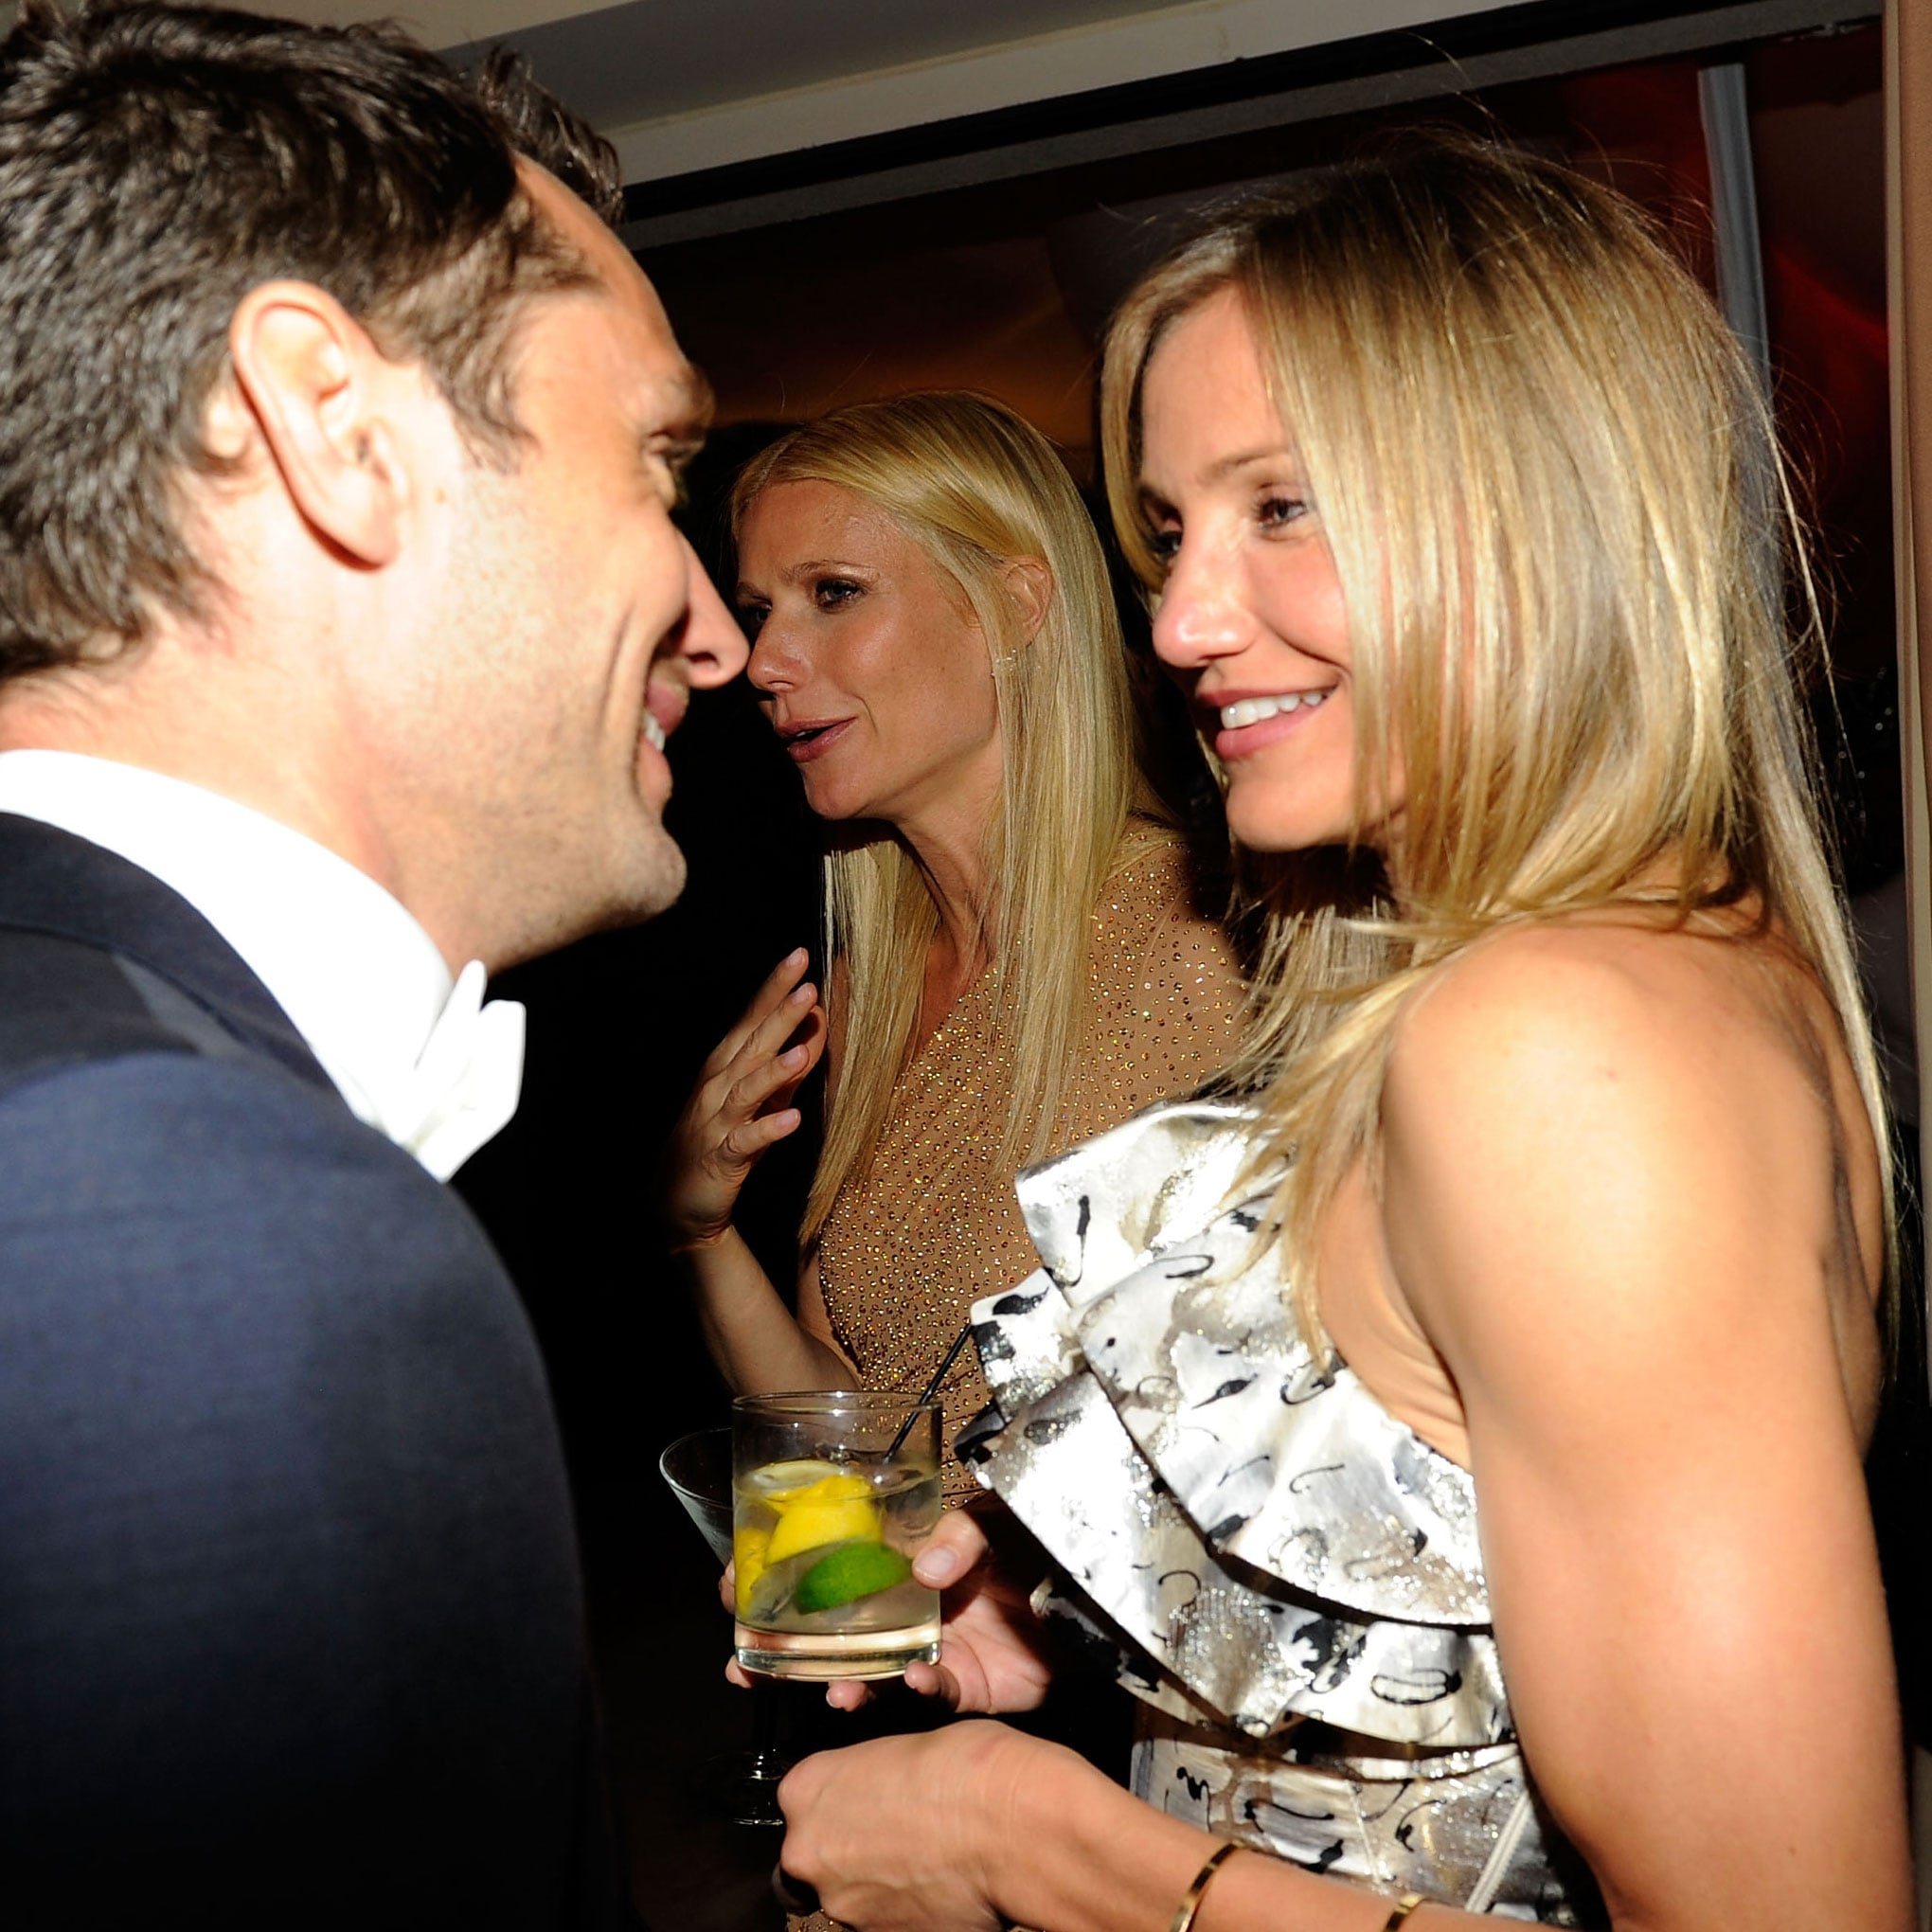 Pictures Of Cameron Diaz, Jude Law, And Gwyneth Paltrow At Vanity Fair  Oscars Party 2011-02-27 23:57:14 | POPSUGAR Celebrity